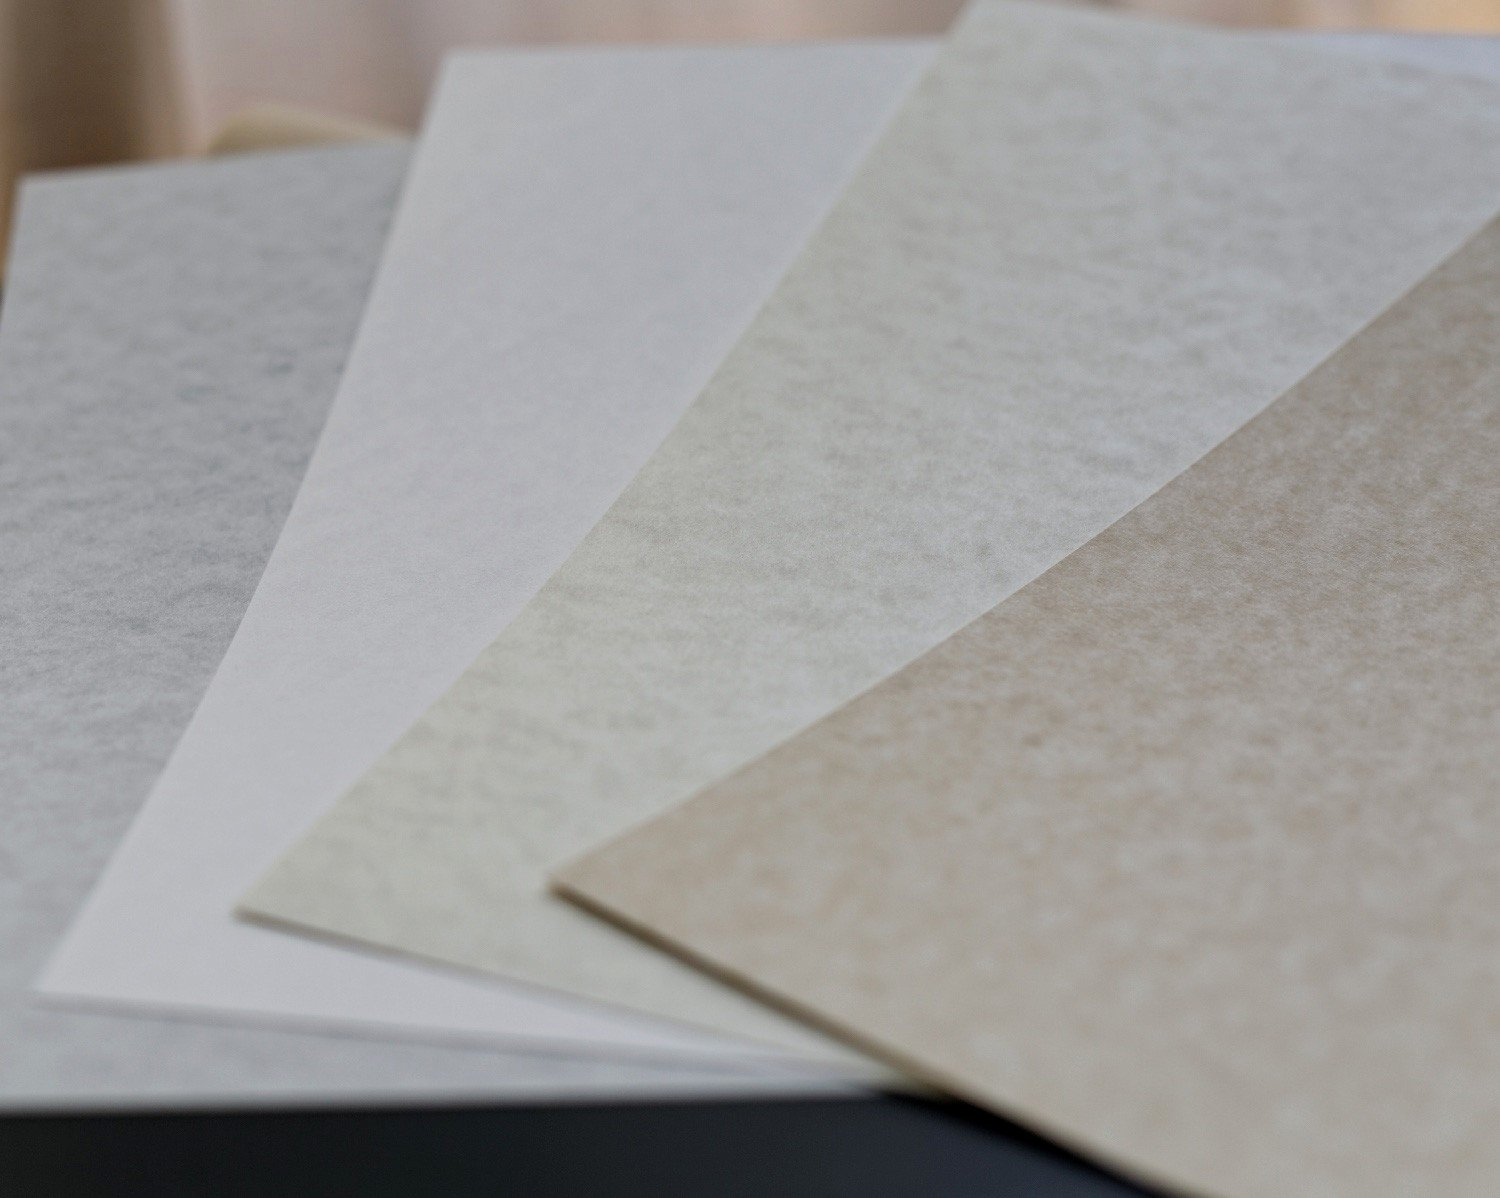 High Quality Certificate Paper Beautiful Parchment Paper the Best Choice for Making Certificates